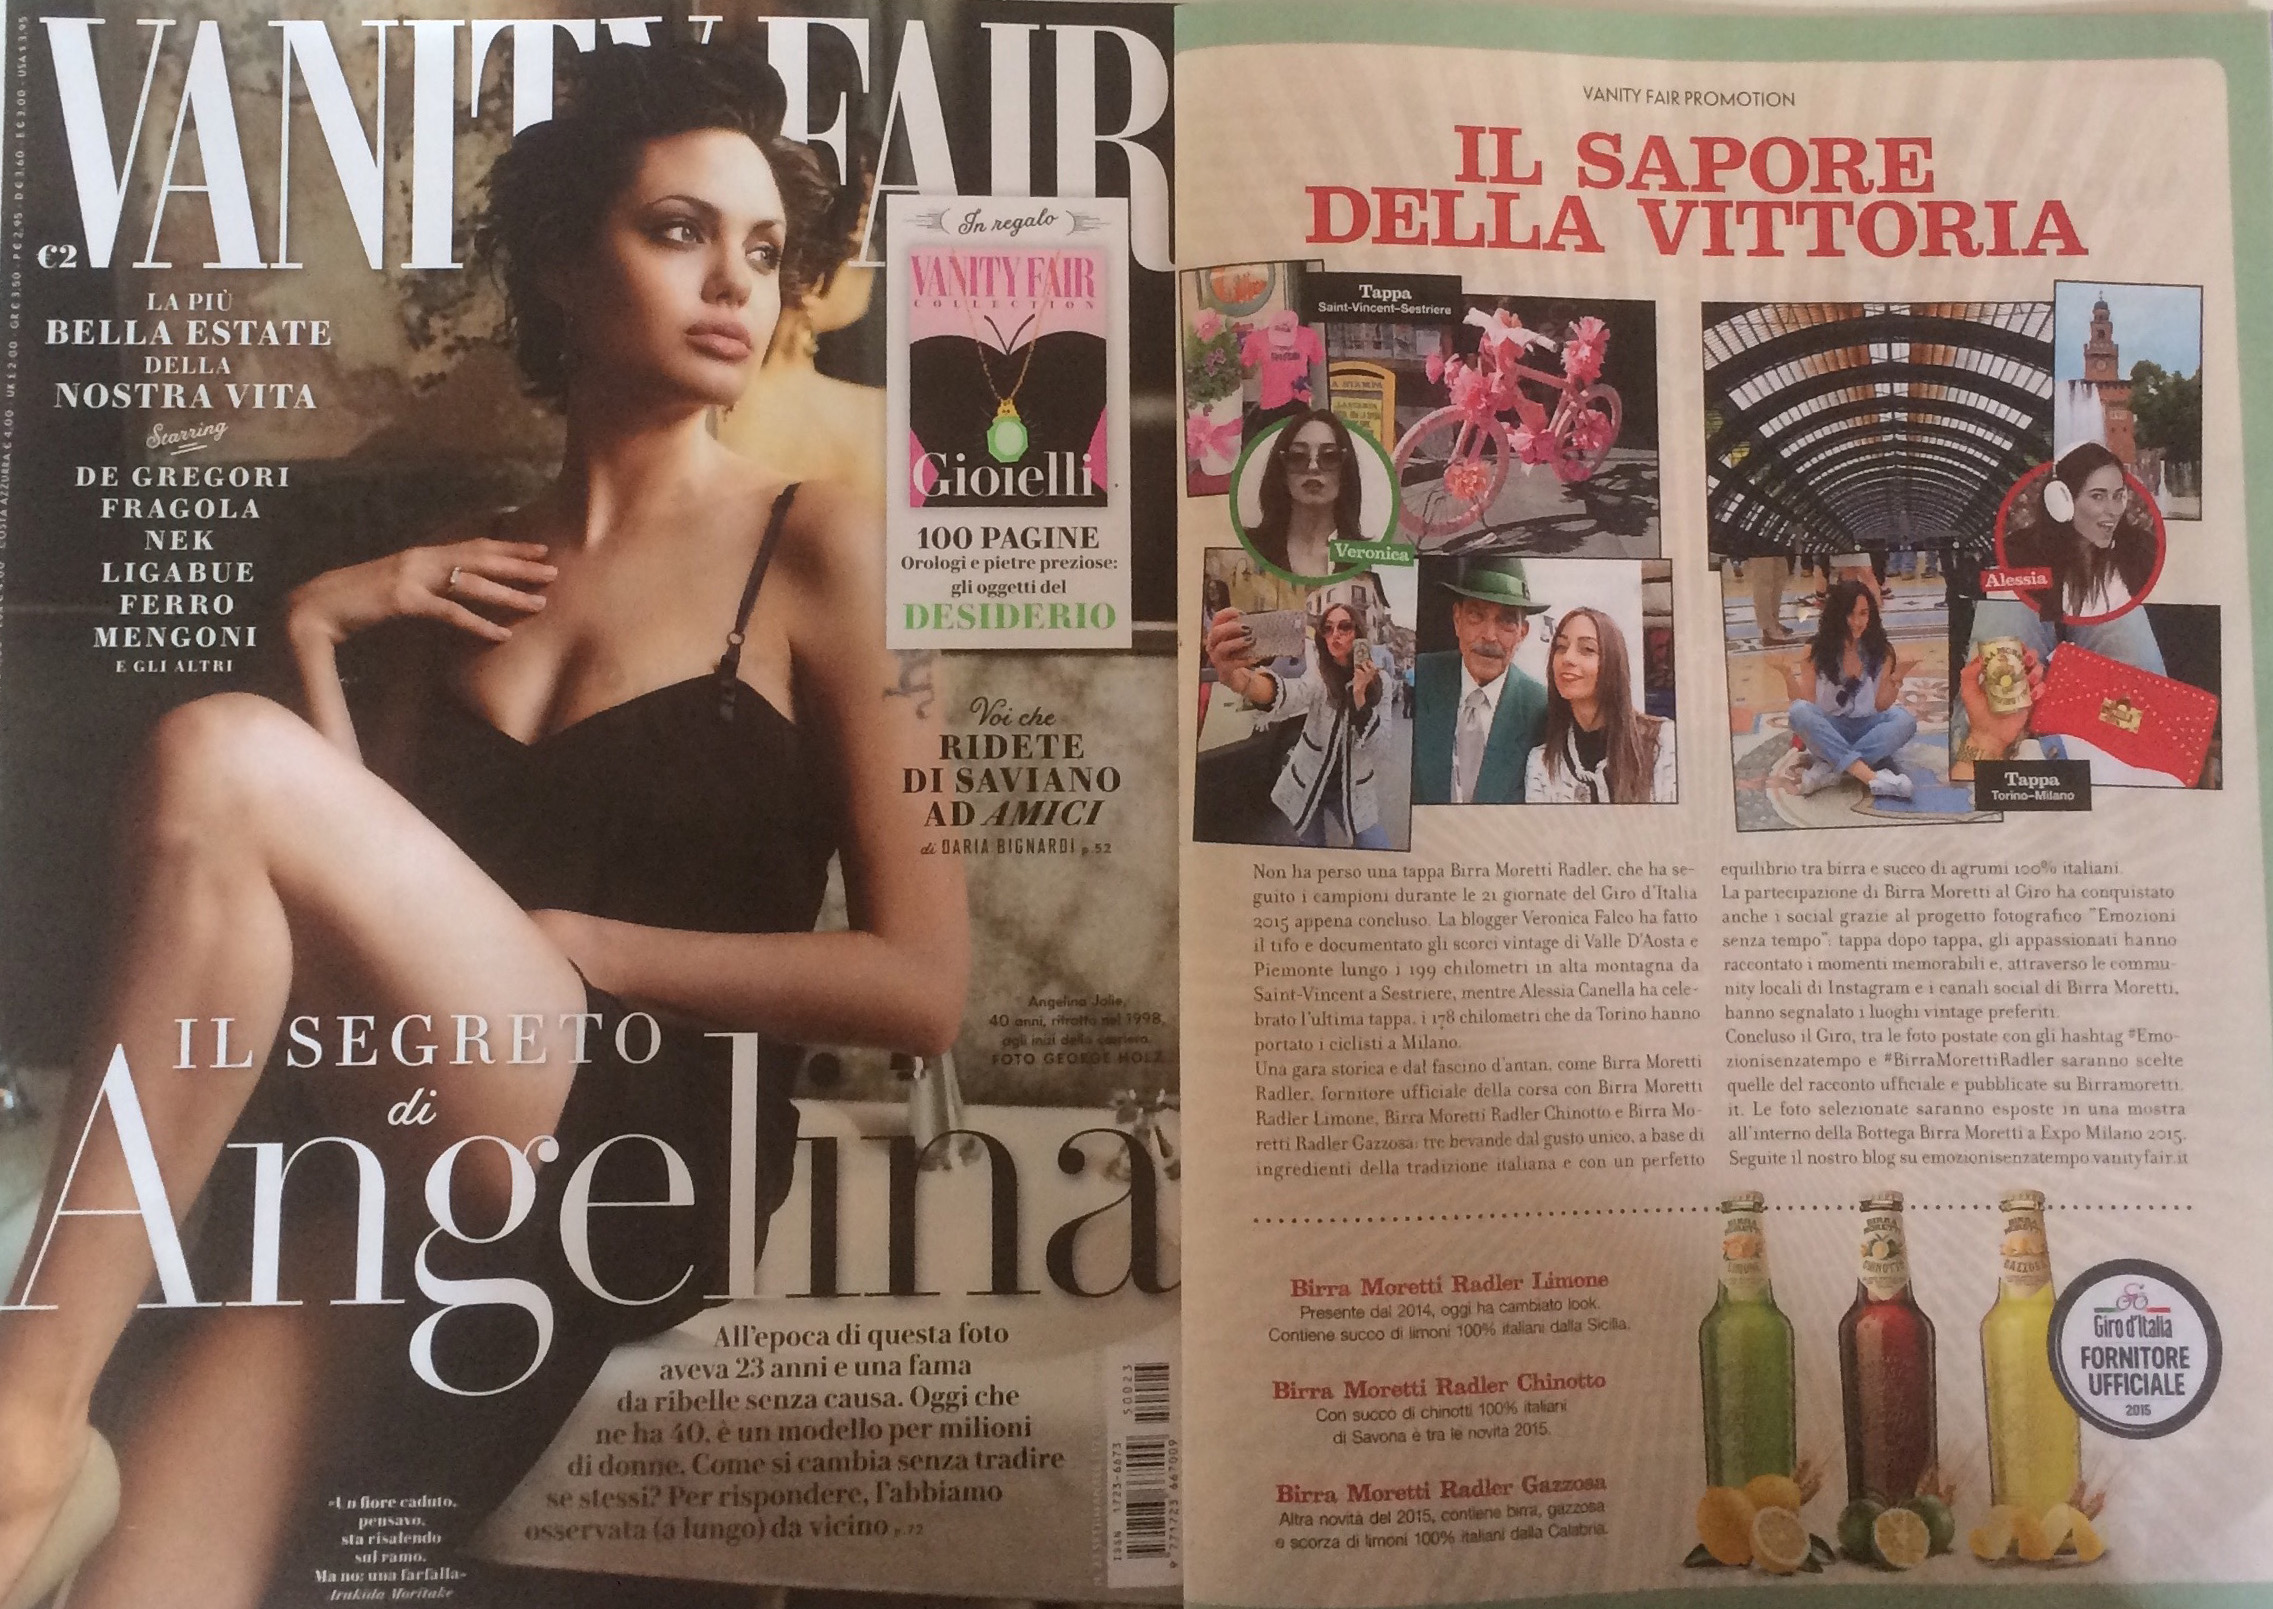 rassegna stampa vanity fair cartaceo angelina